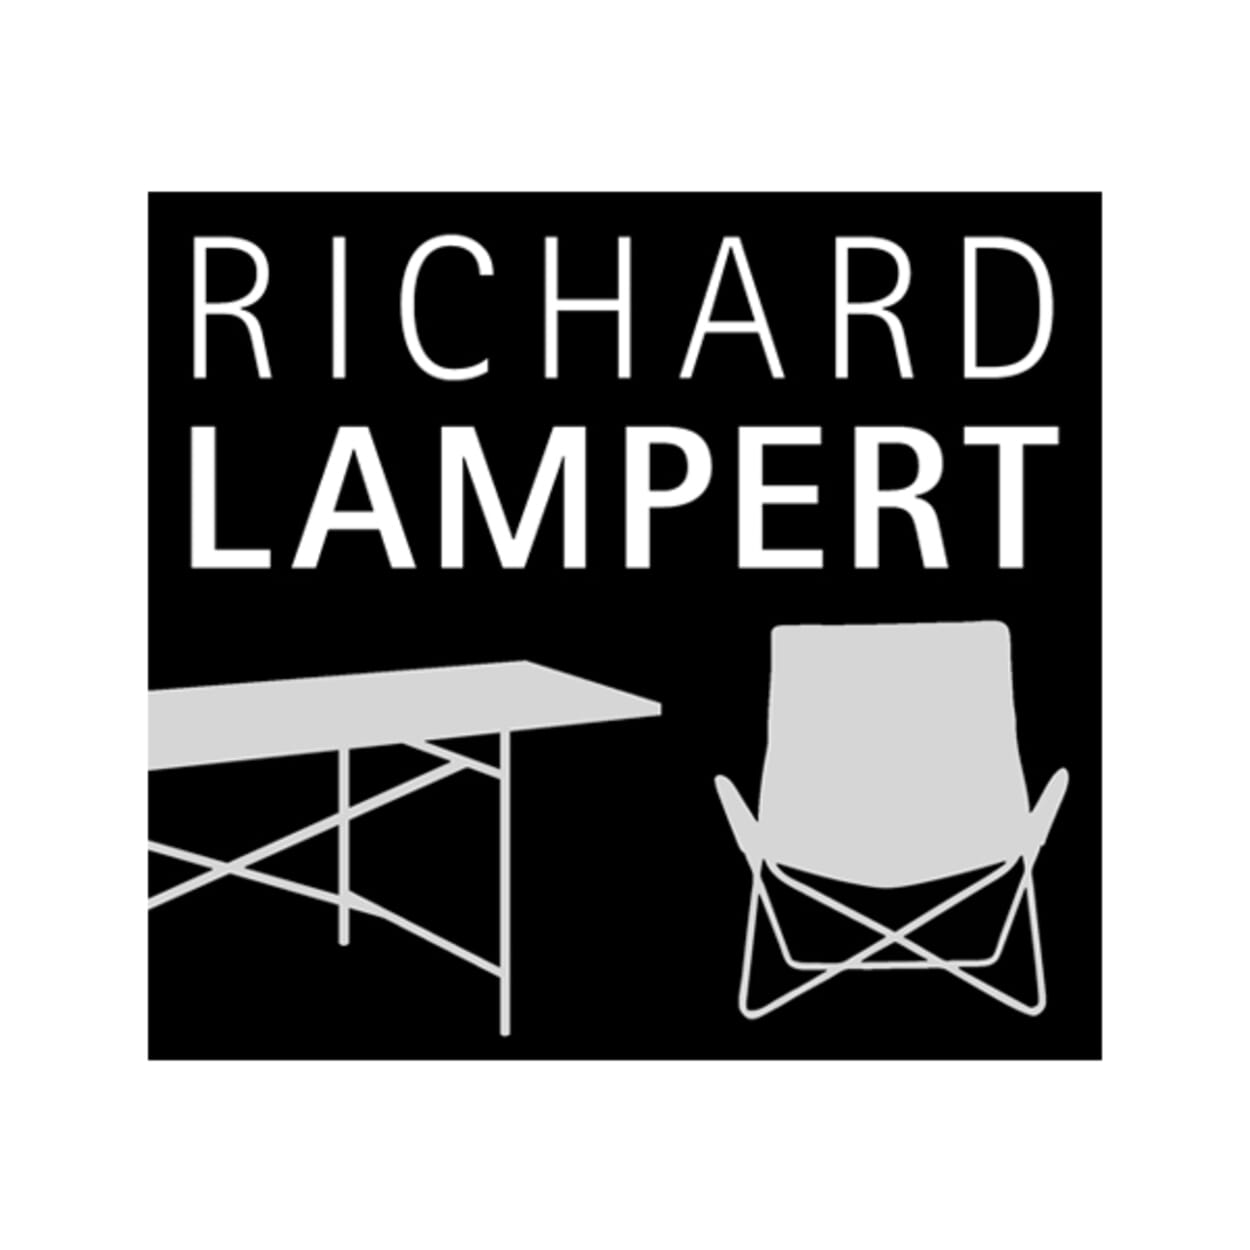 RichardLampert